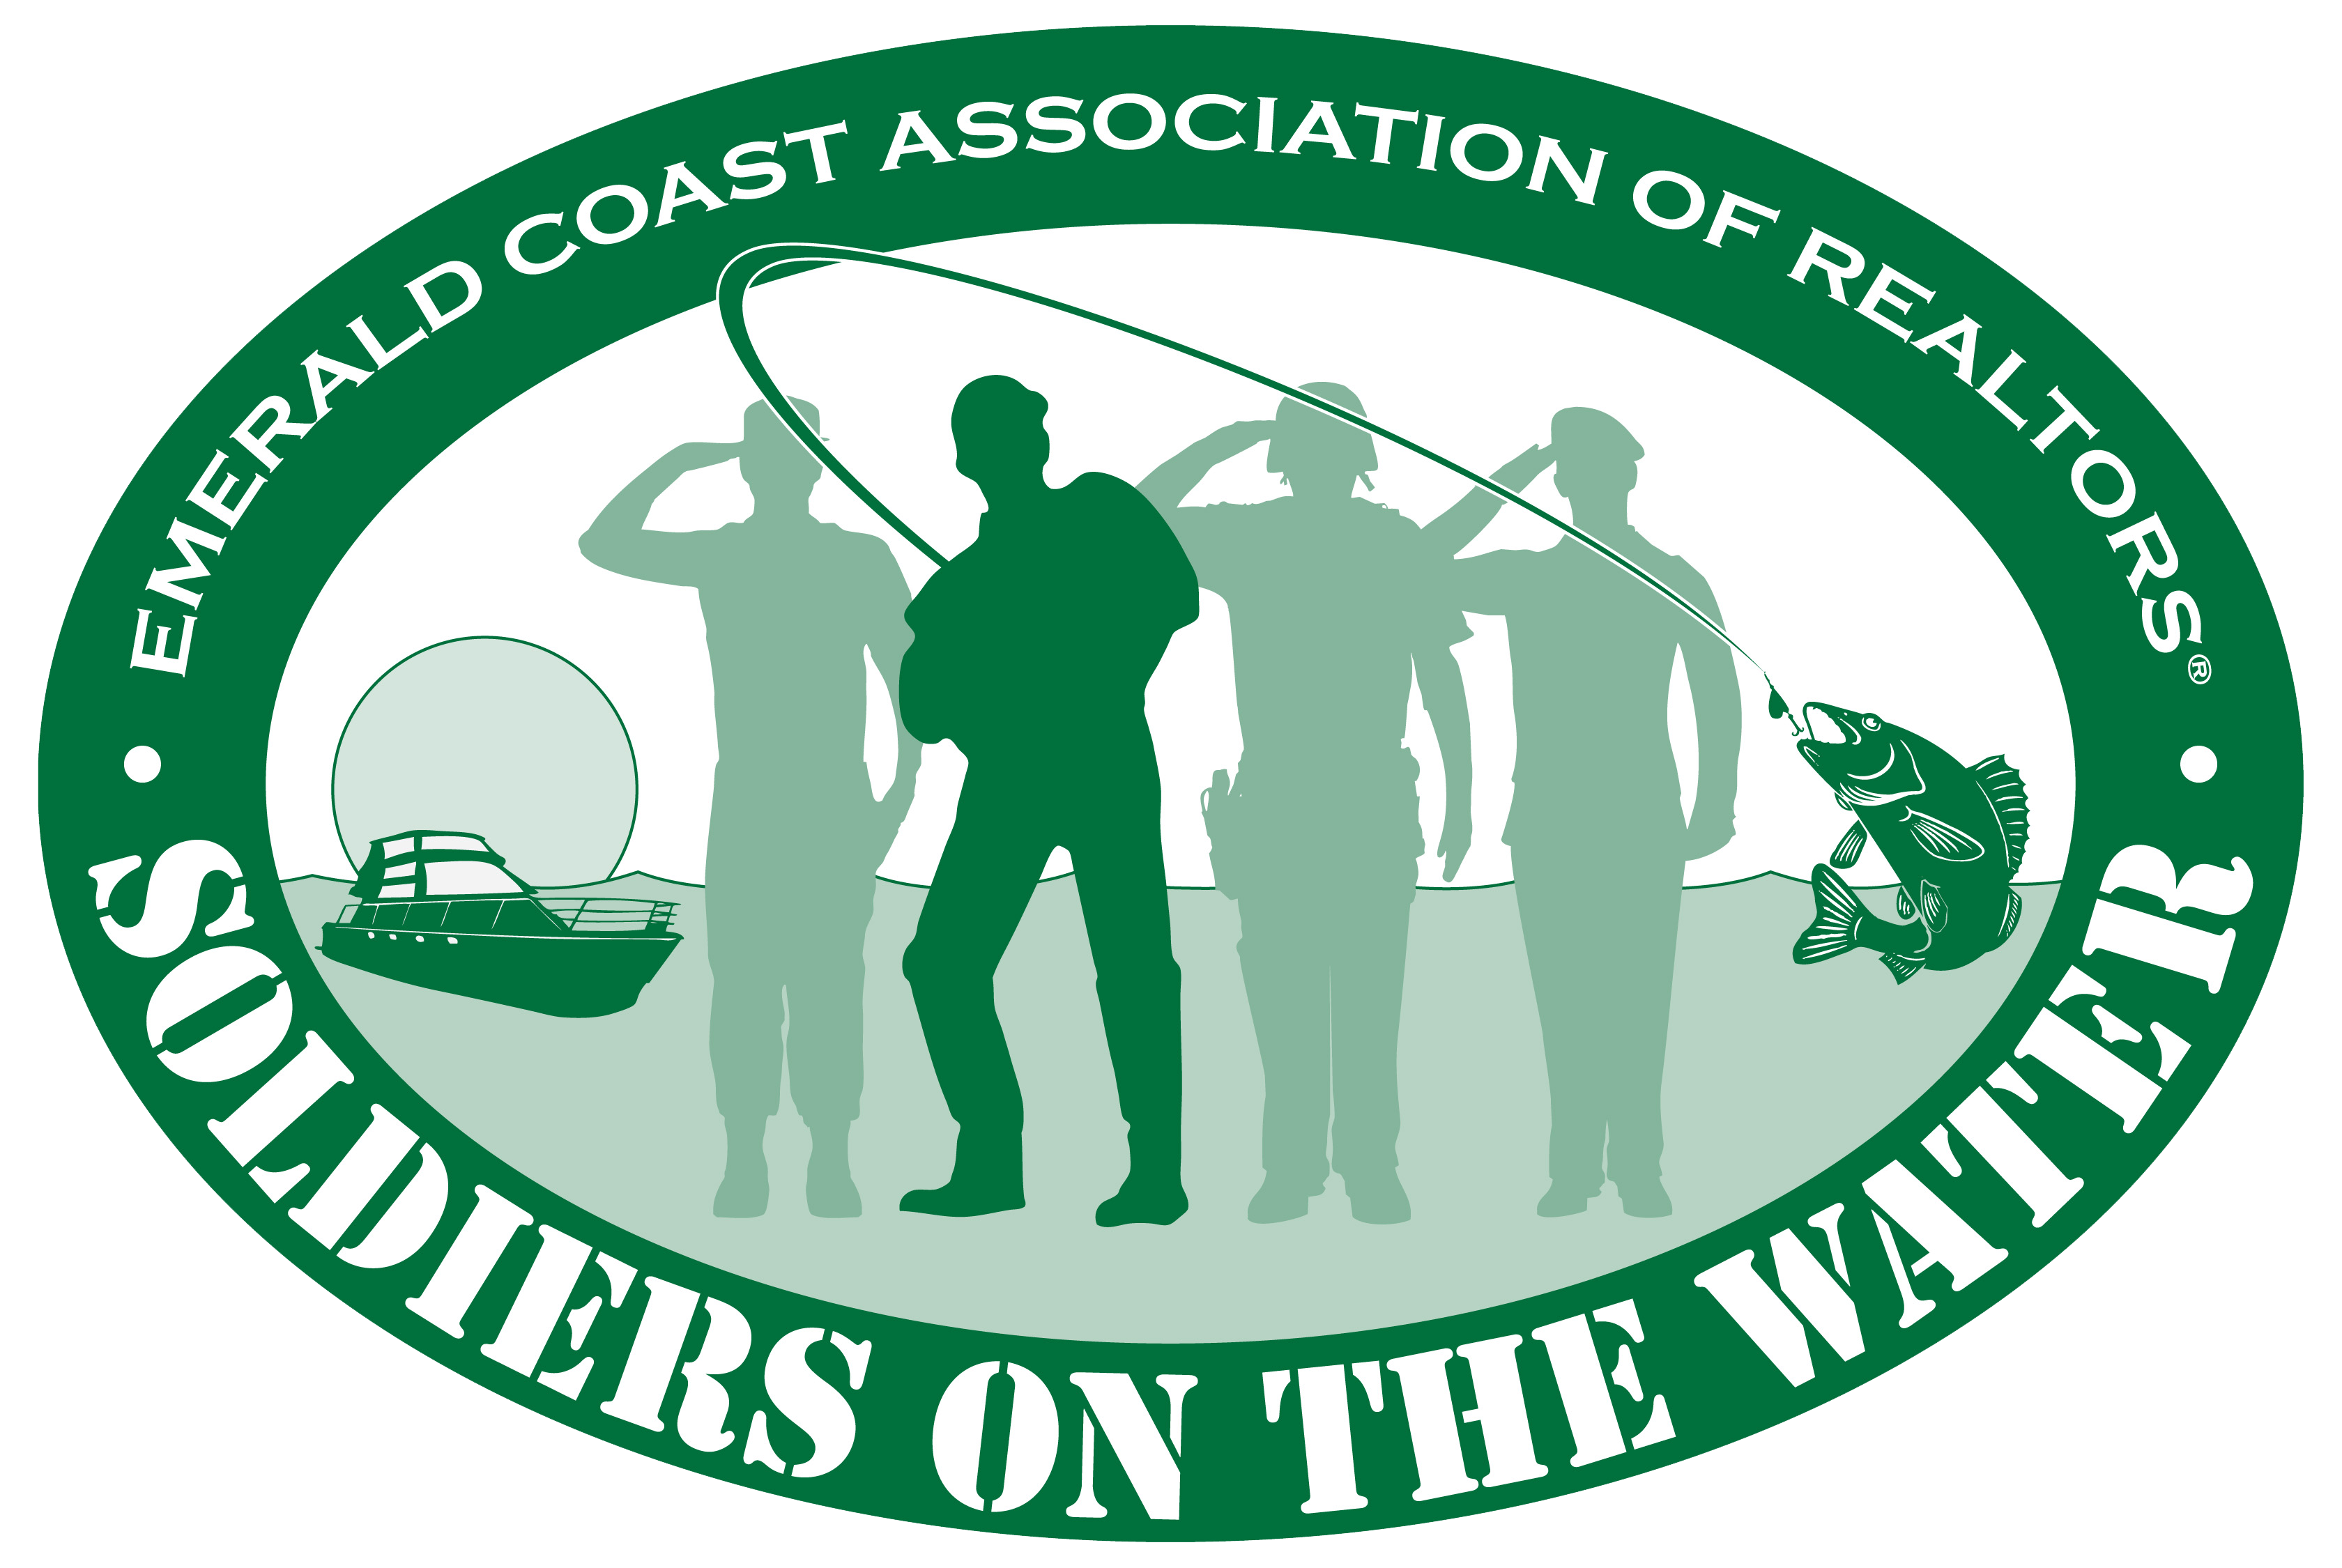 Soldiers on the Water ECAR LOGO